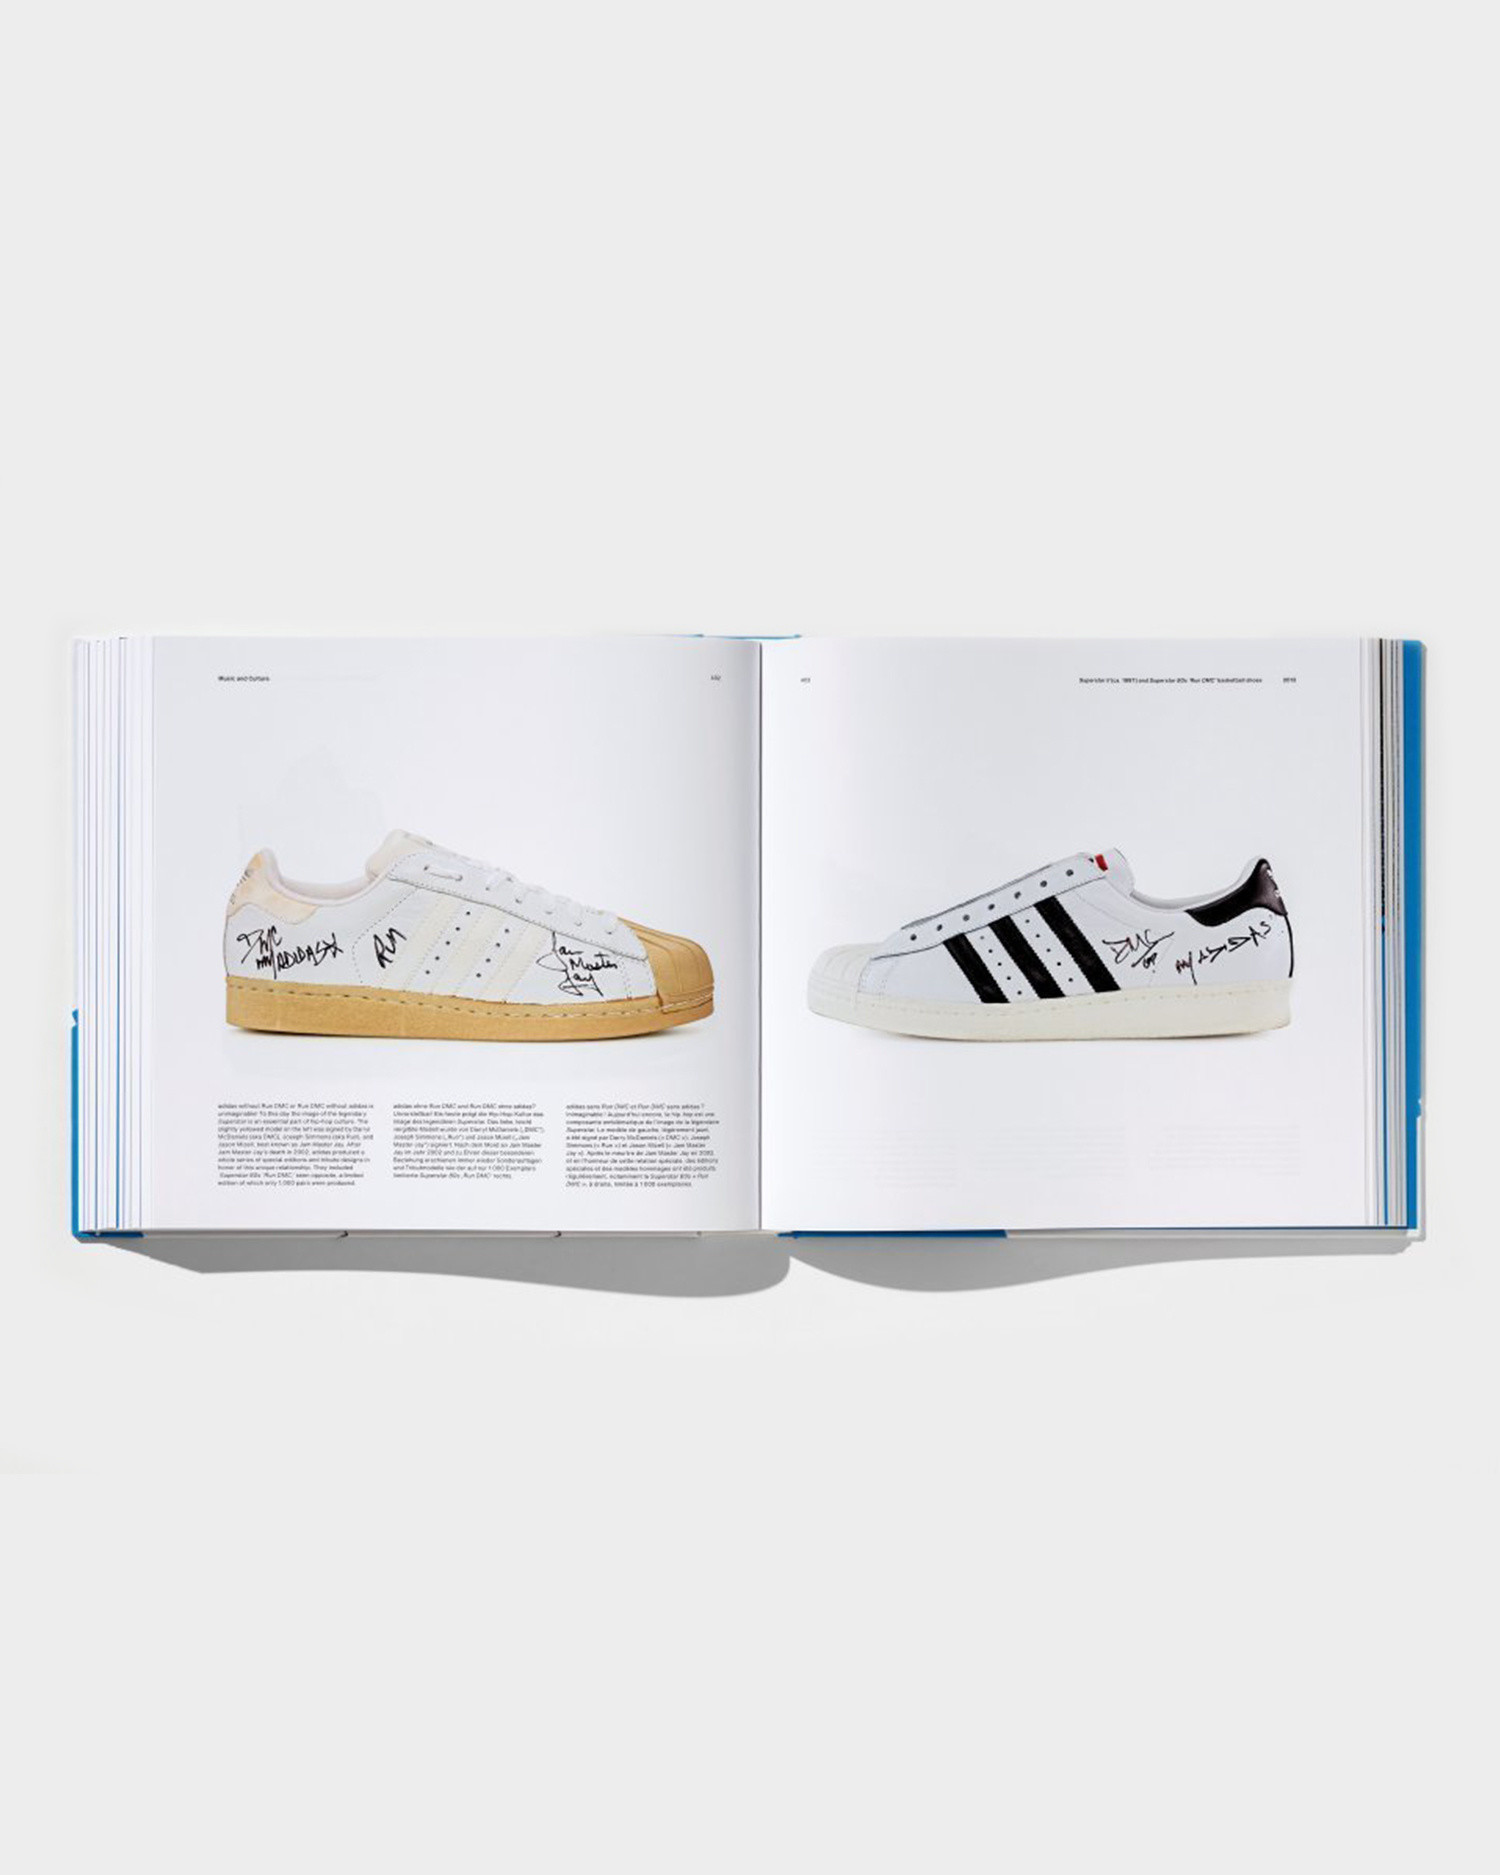 The adidas Archive /The Footwear Collection Book